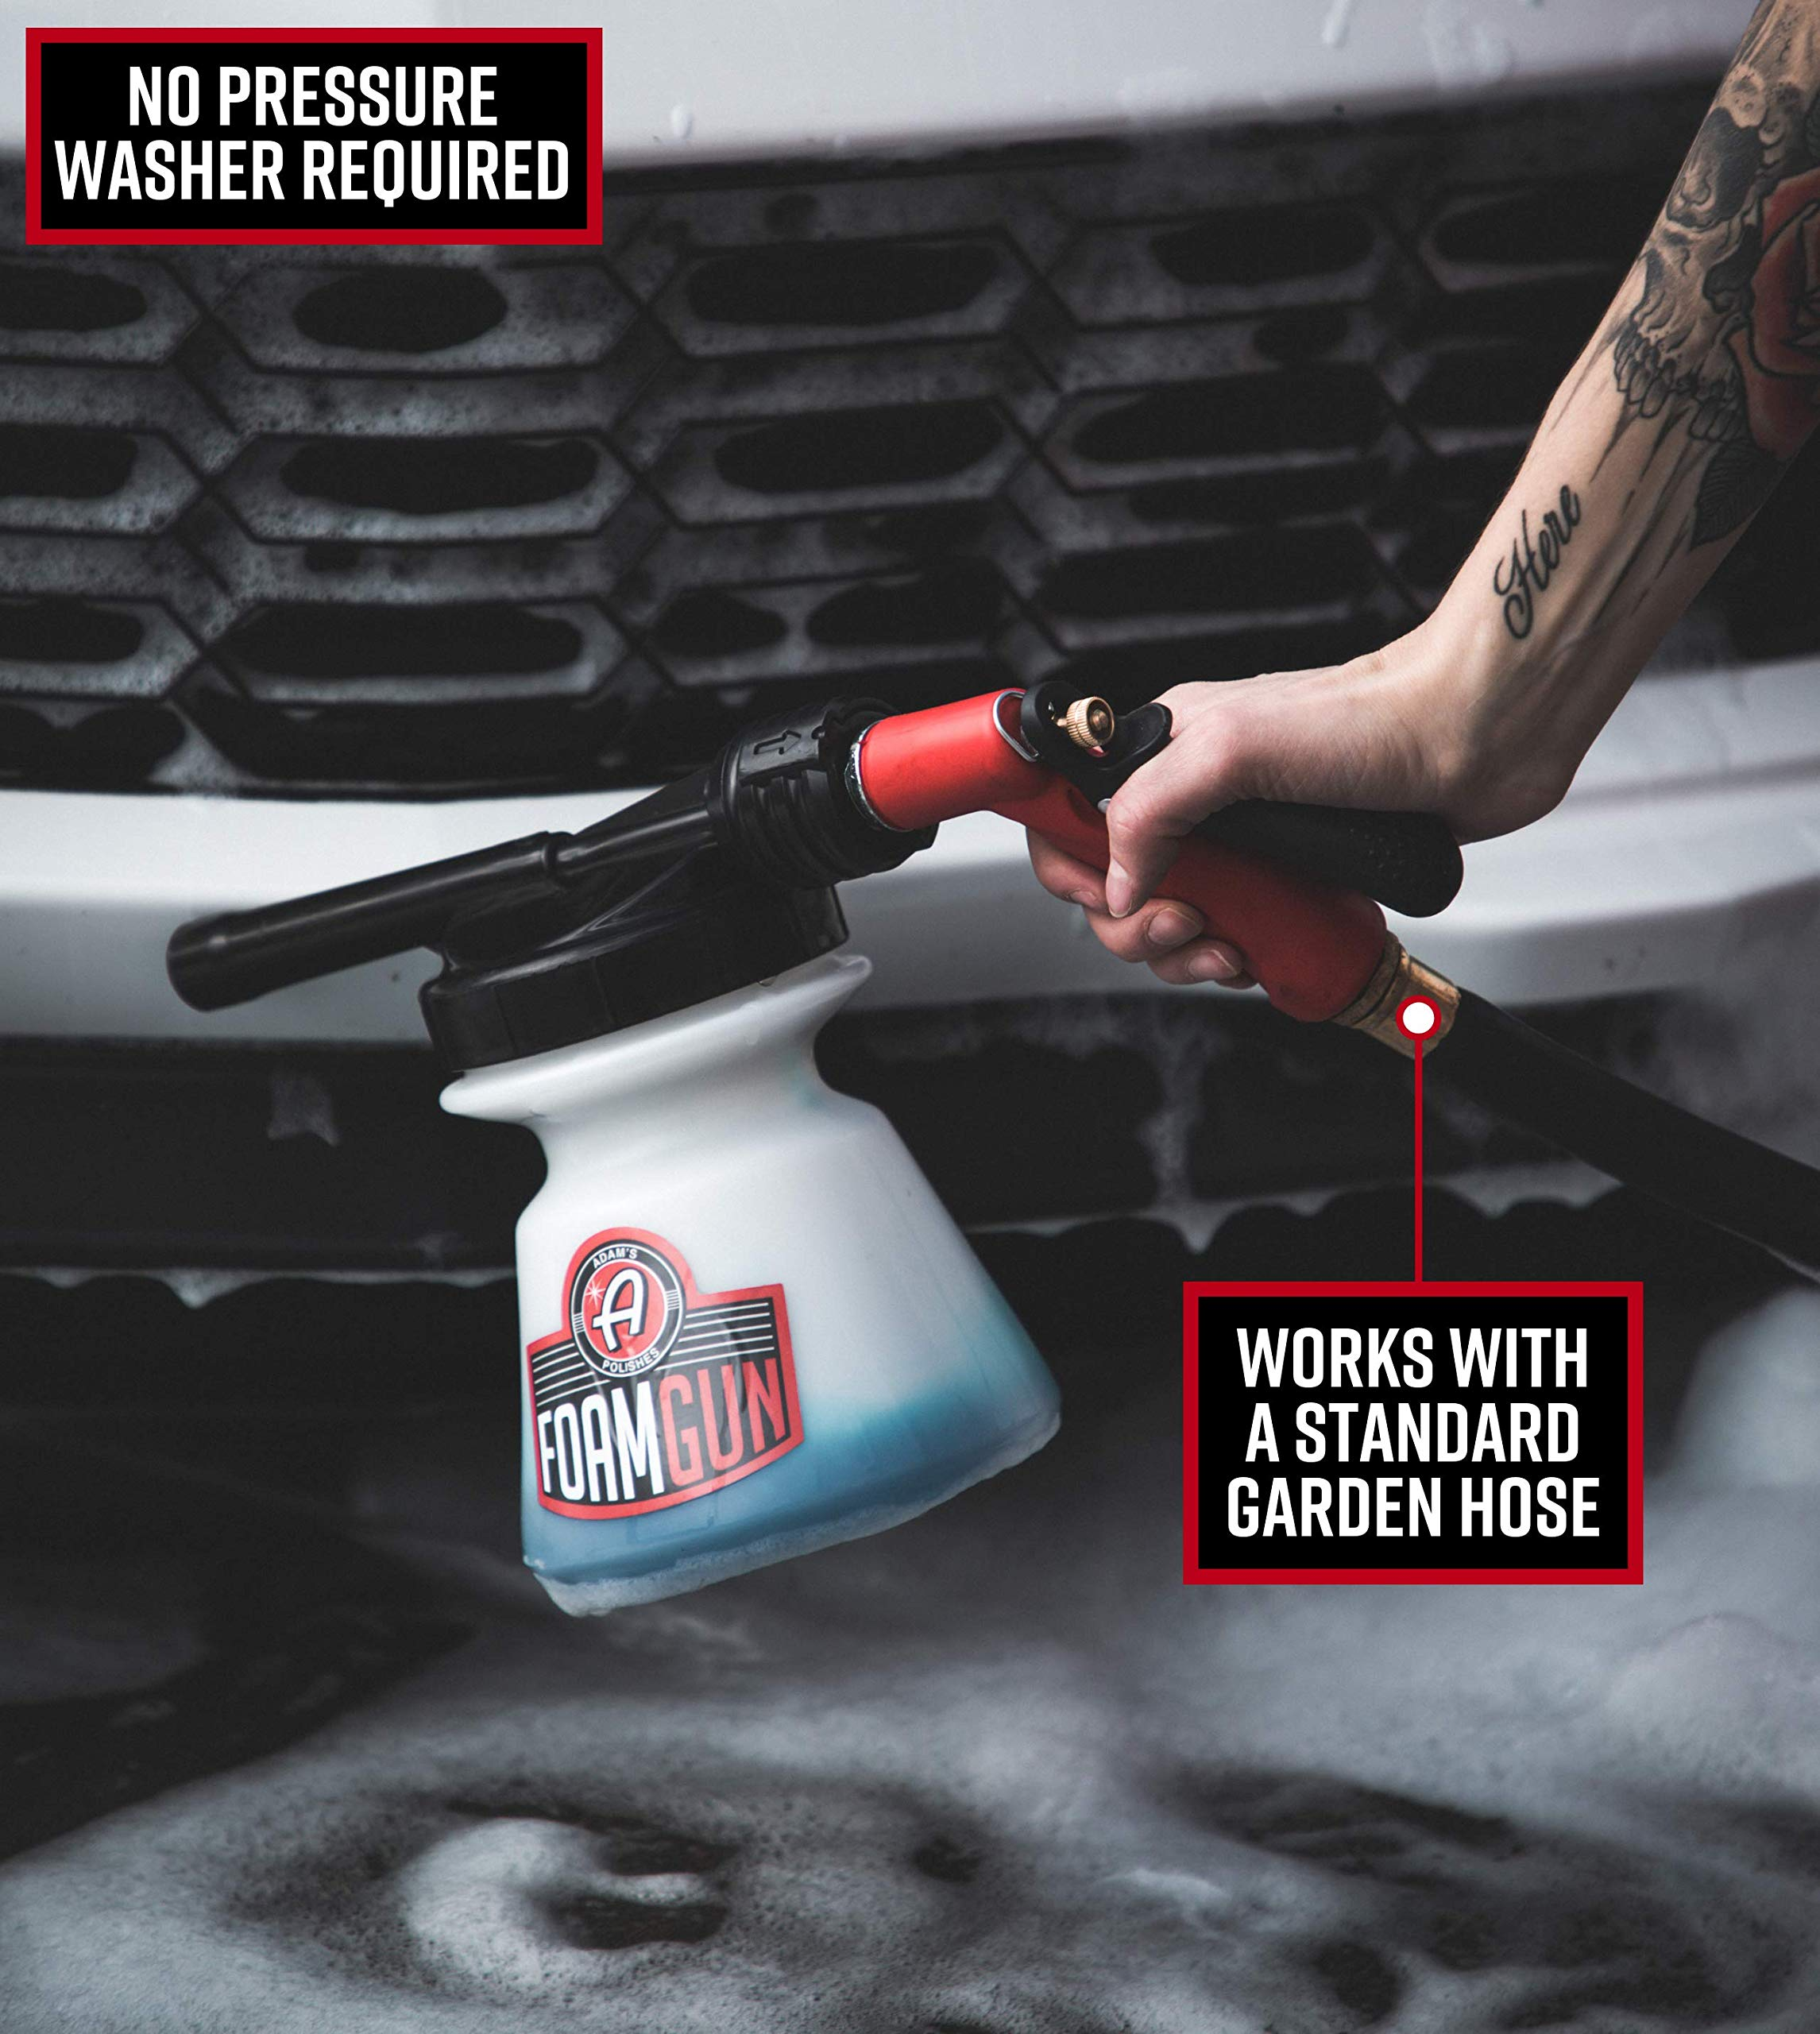 Adam's Foam Gun & Ultra Foam Gallon - Use with Any Car Wash Soap & Garden Hose for Thick Suds - Detailing Tool Does Not Require Pressure Washer & Won't Remove Wax Sealant by Adam's Polishes (Image #4)